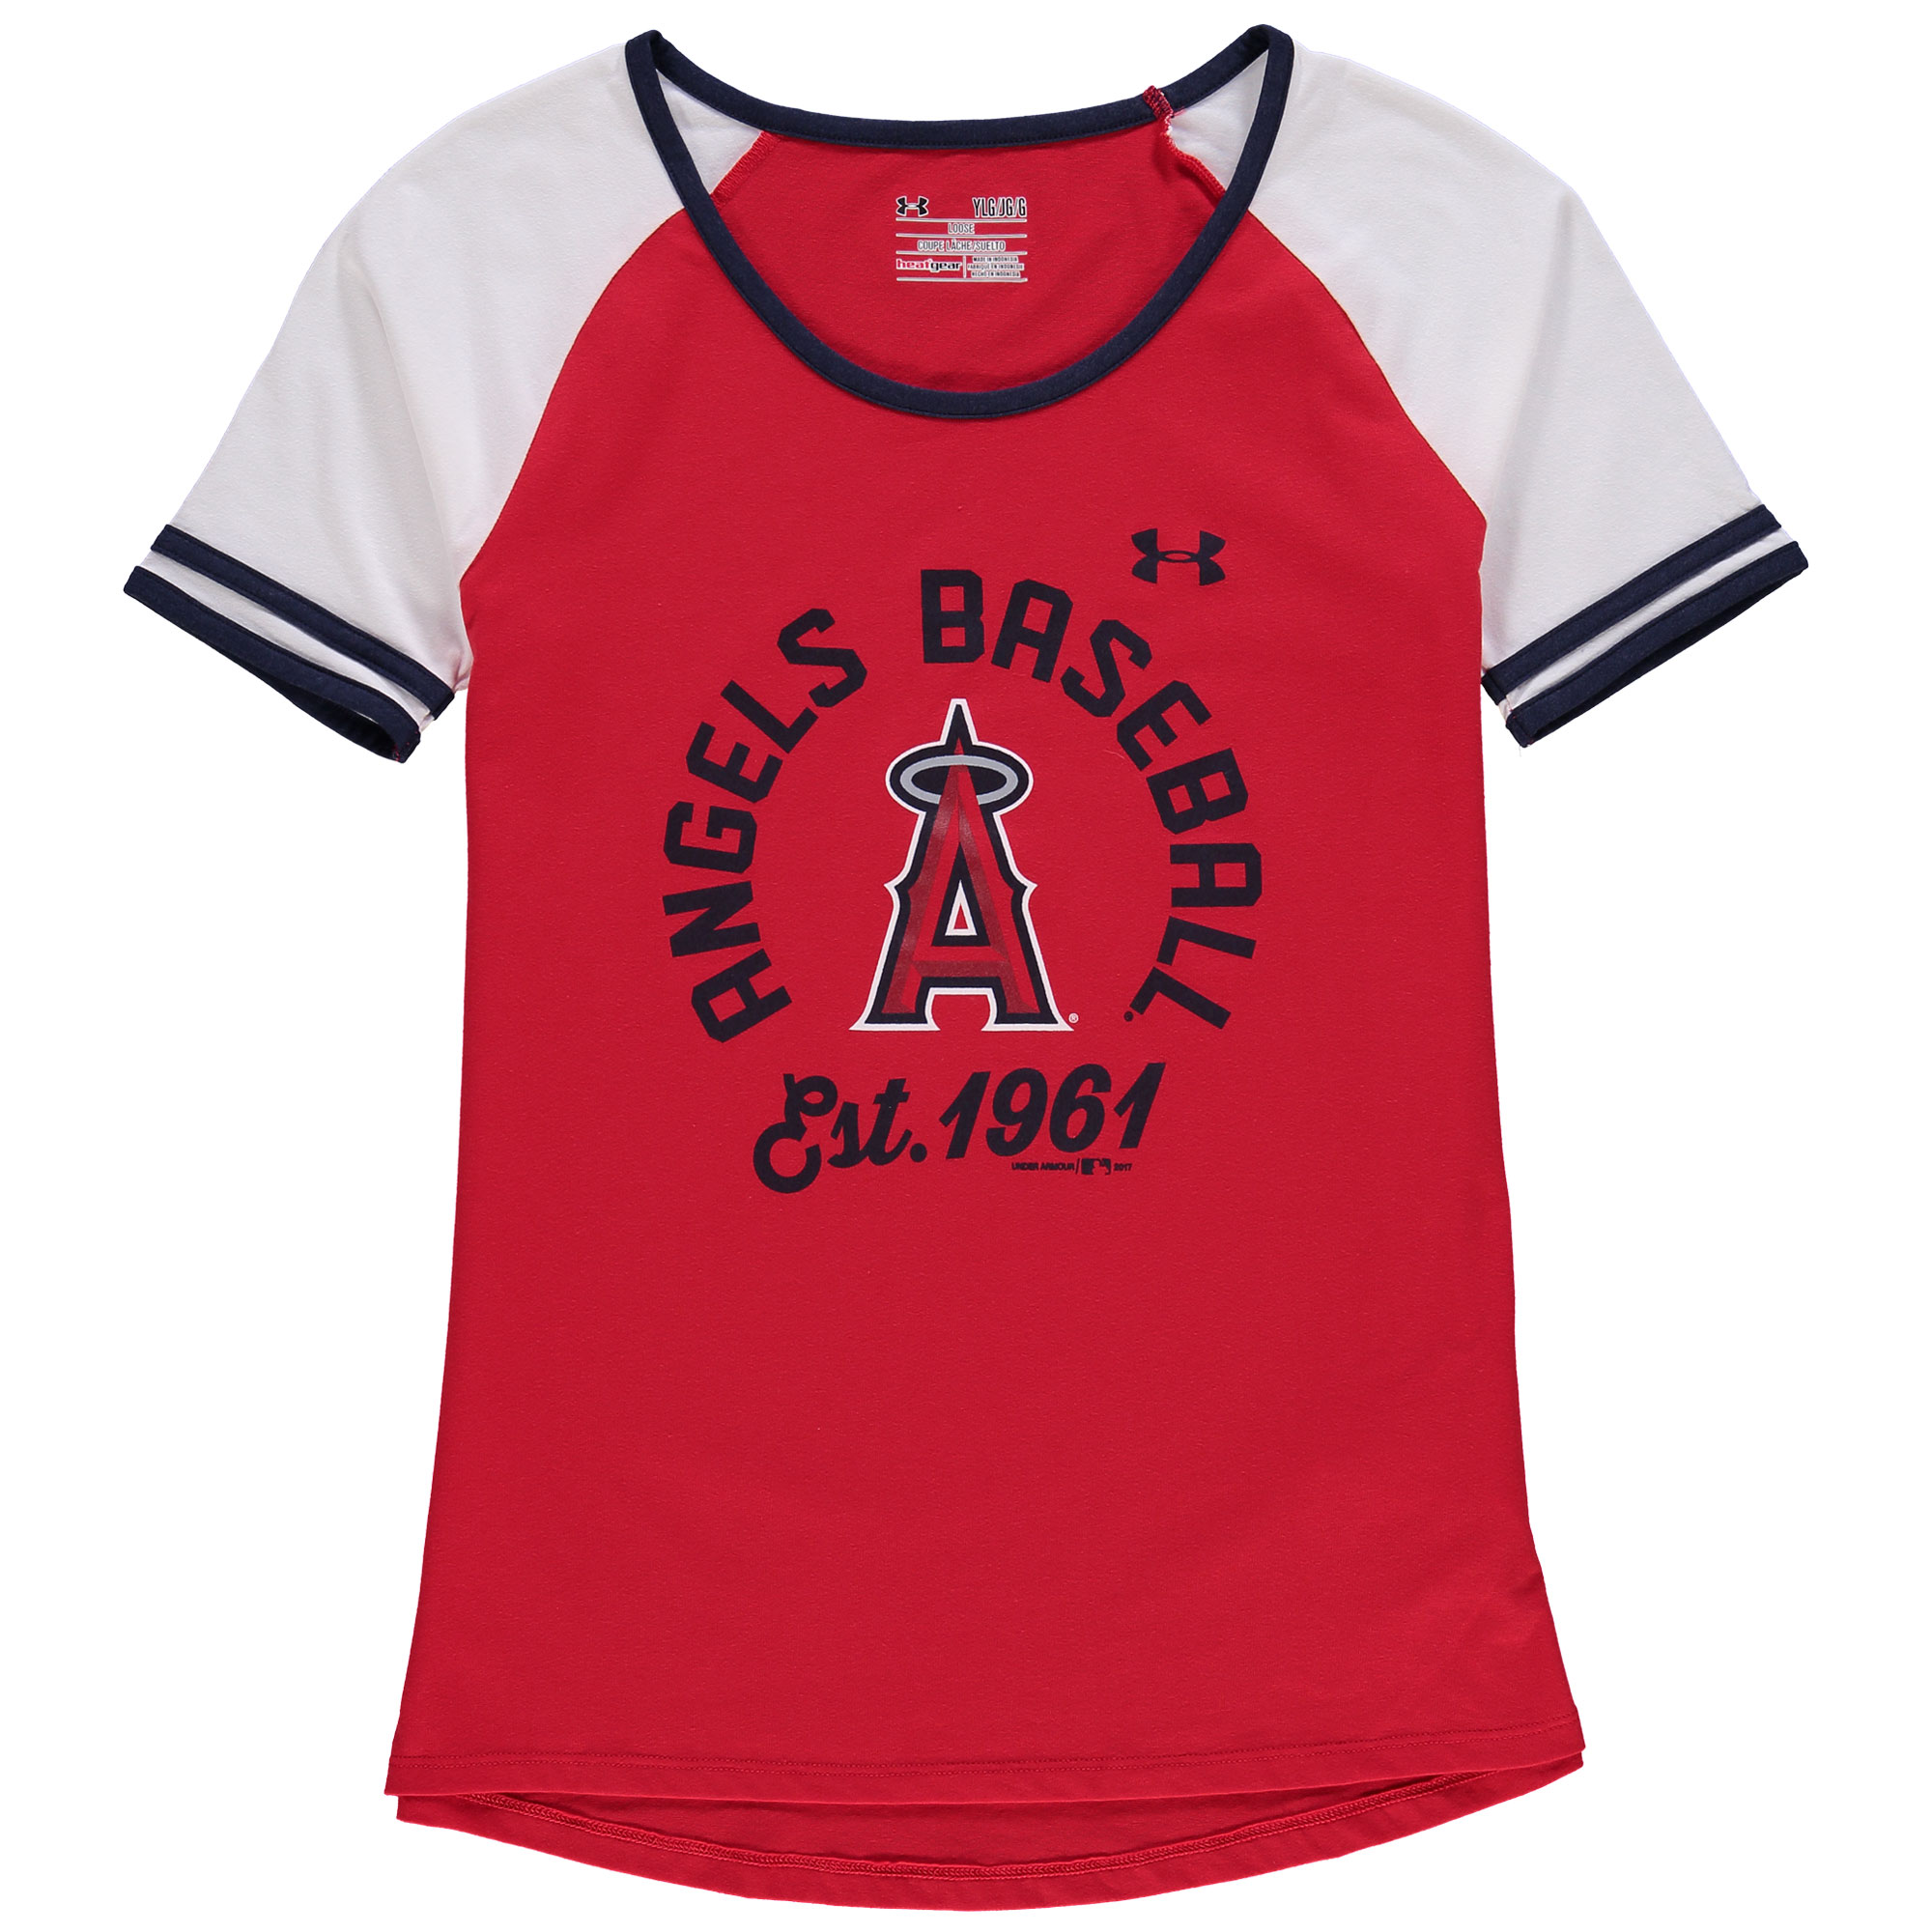 Girls Youth Under Armour Red/White Los Angeles Angels Baseball Half-Sleeve T-Shirt